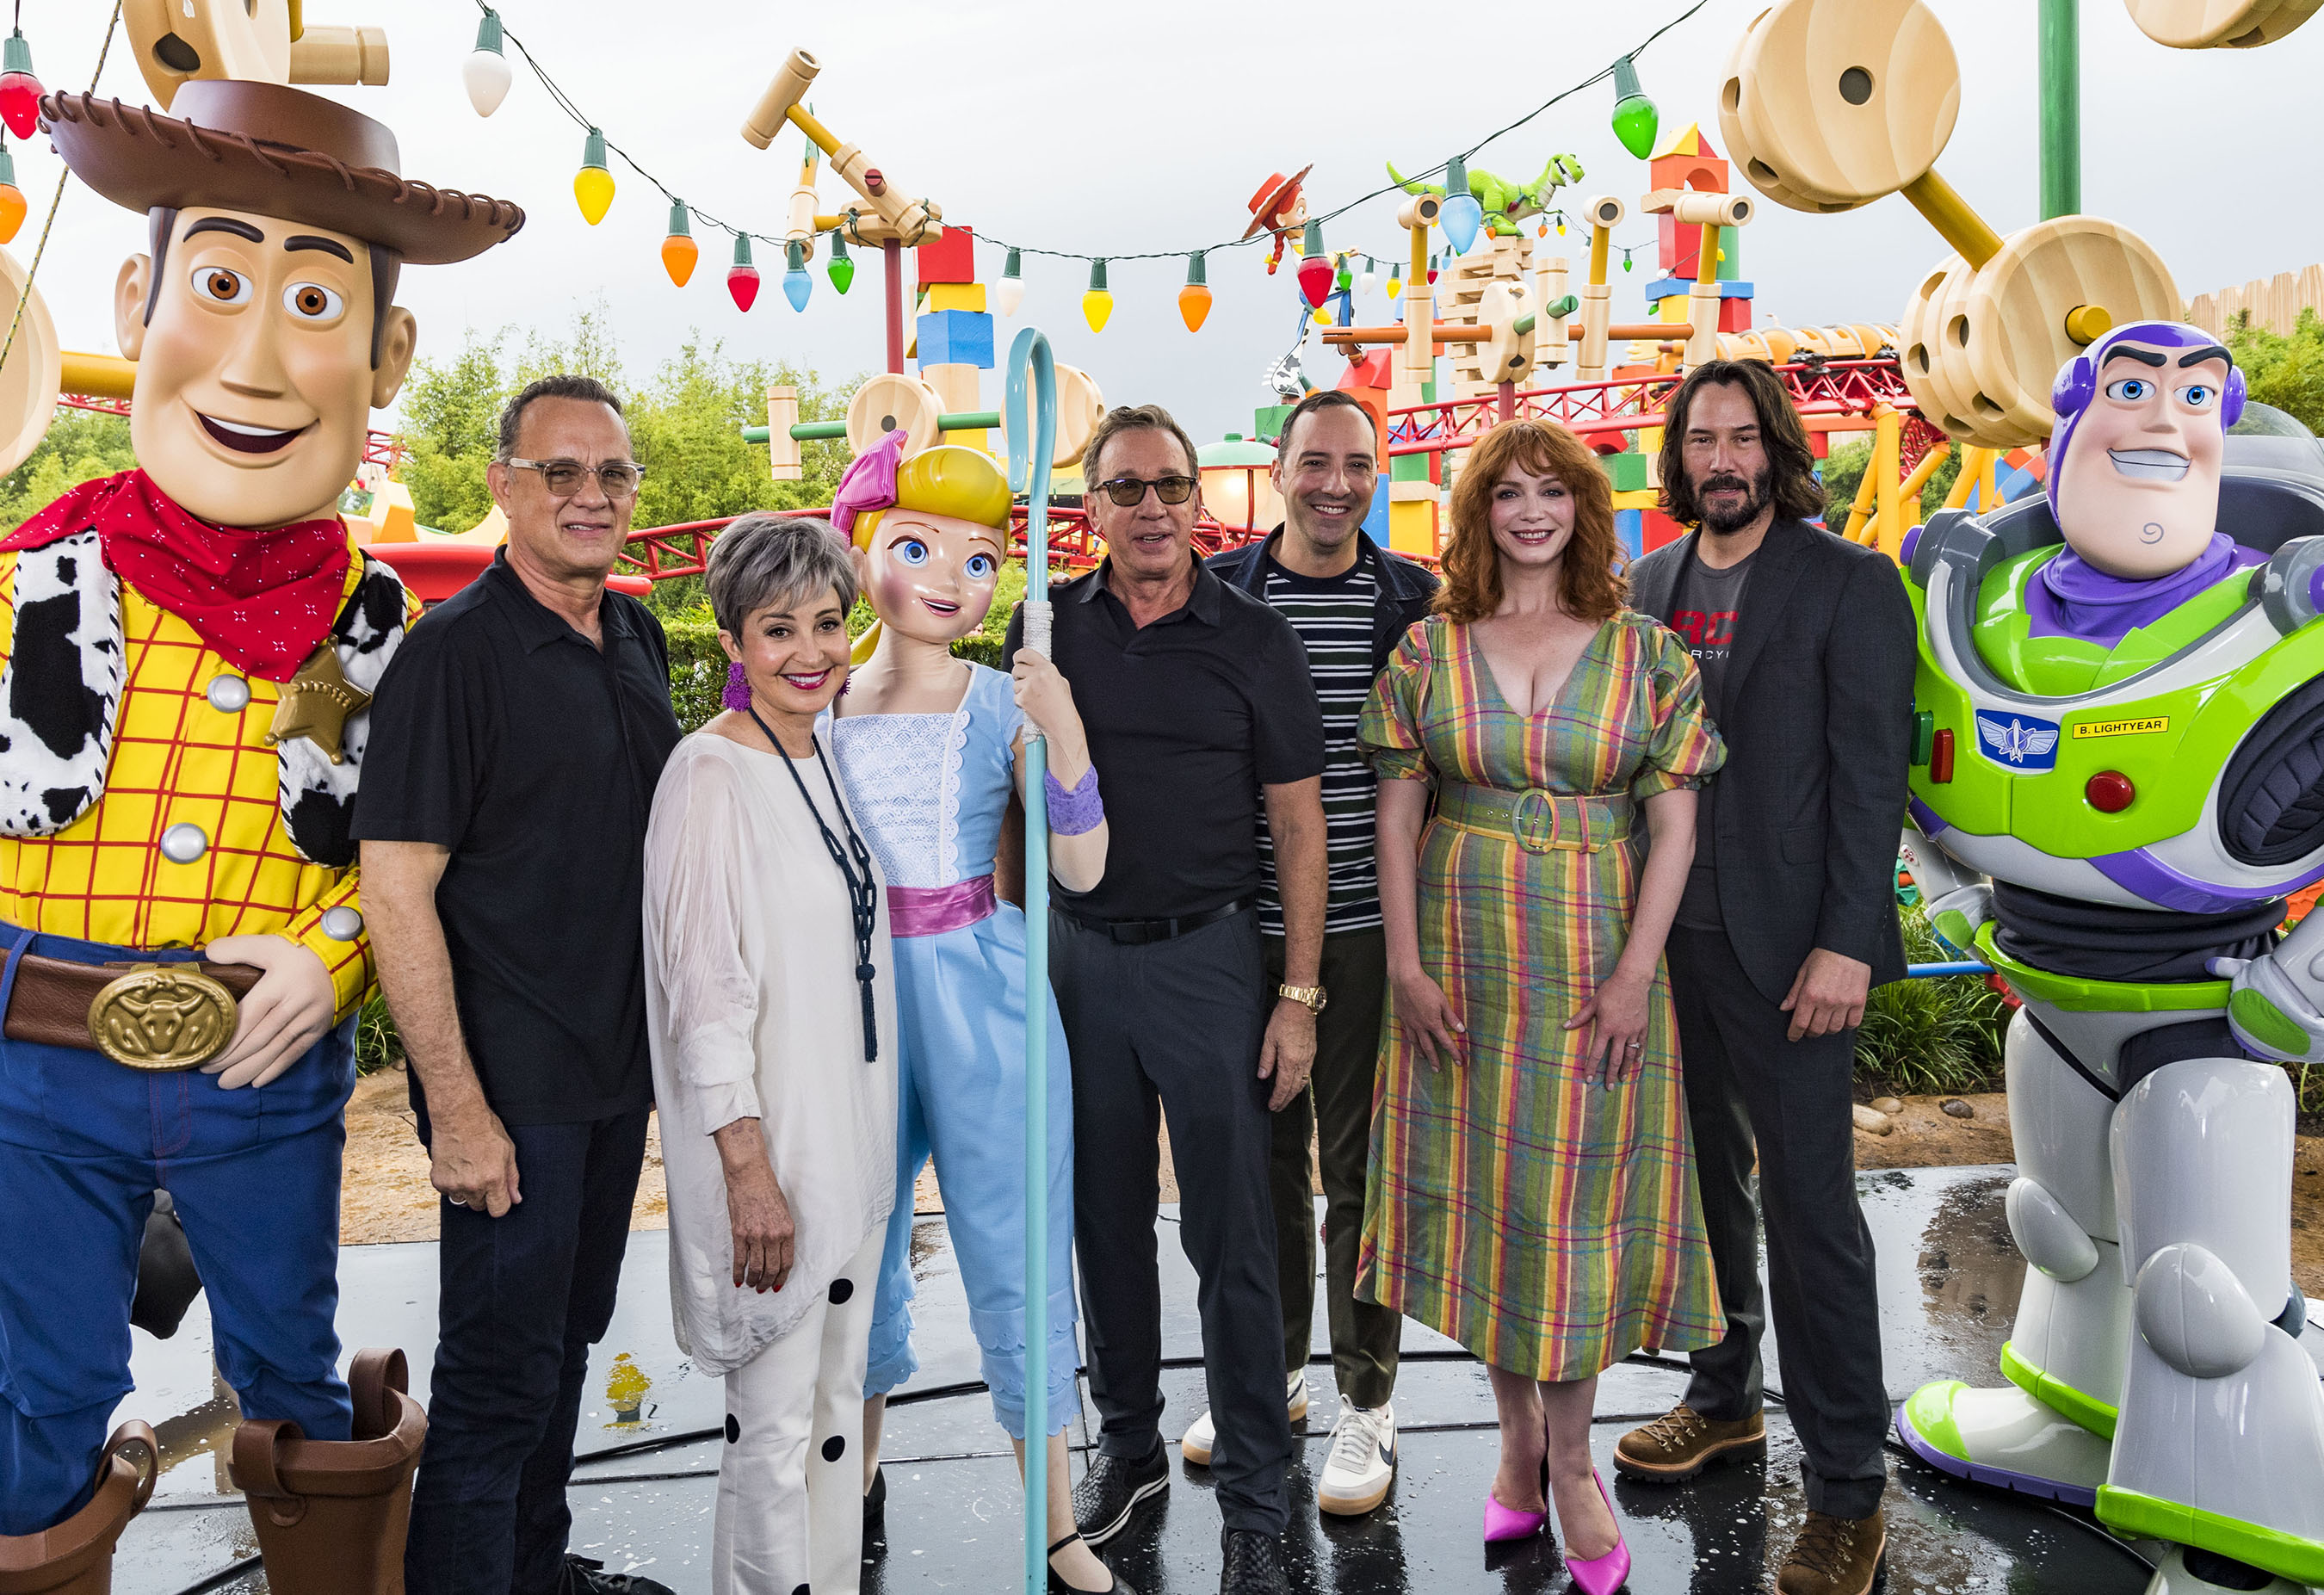 "Stars from Disney•Pixar's ""Toy Story 4"" appear with characters from the film inside Toy Story Land at Disney's Hollywood Studios at Walt Disney World Resort in Lake Buena Vista, Fla., June 8, 2019. From left: Woody, Tom Hanks, Annie Potts, Bo Peep, Tim Allen, Tony Hale, Christina Hendricks, Keanu Reeves and Buzz Lightyear. (Matt Stroshane, photographer)"